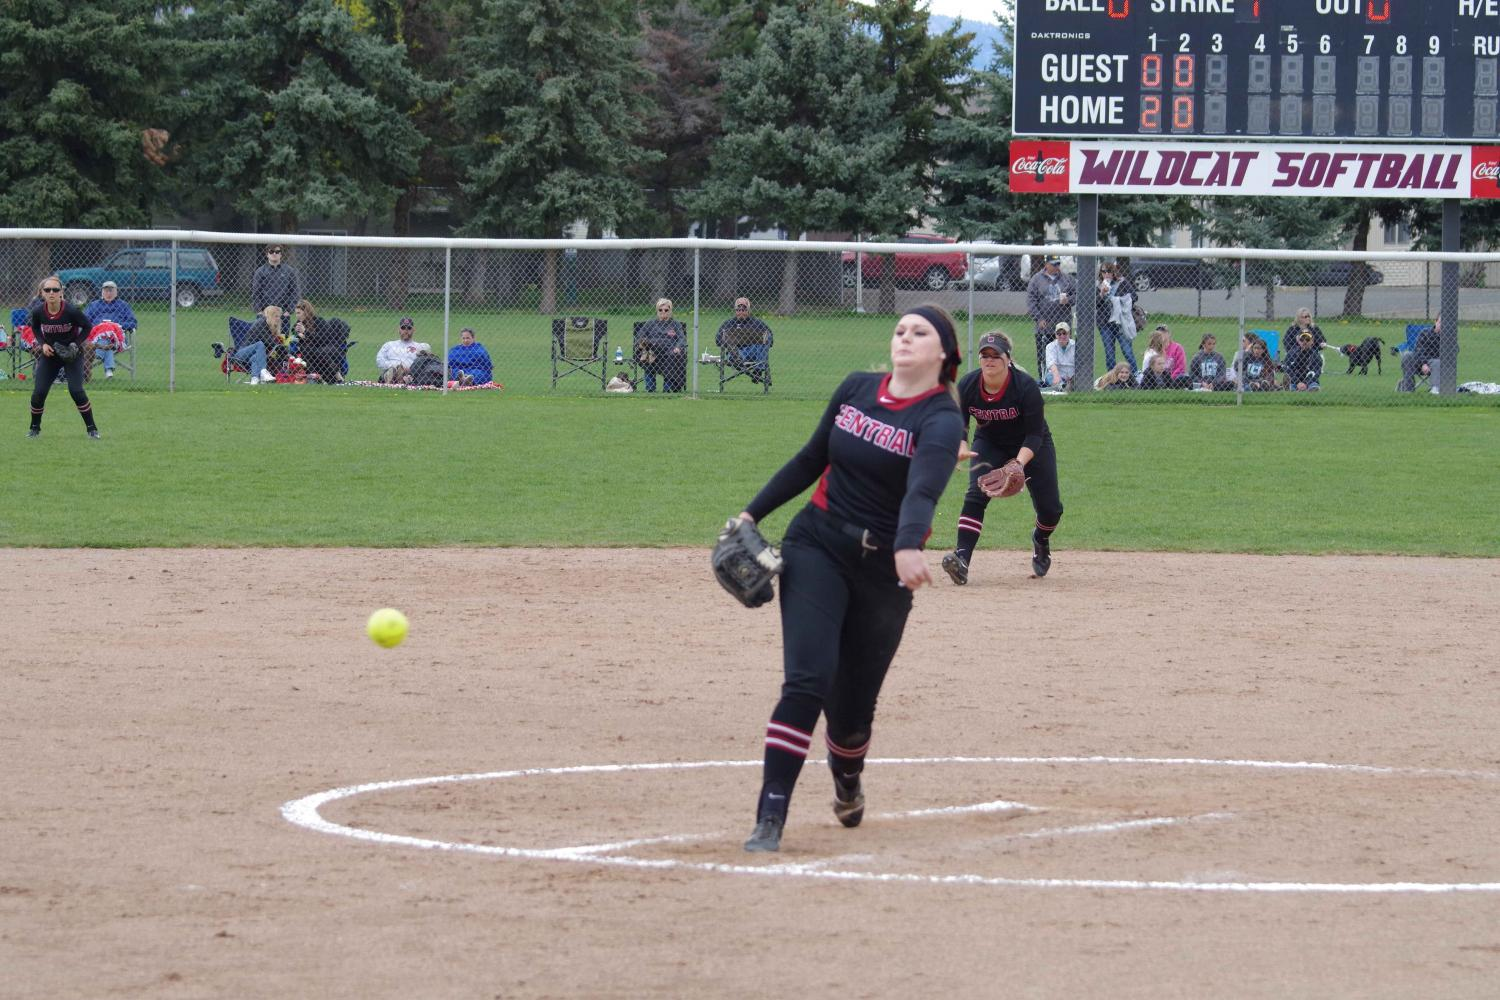 Senior+pitcher+Kiana+Wood+throwing+a+pitch+during+their+doubleheader+with+Saint+Martin%E2%80%99s+University.+Wood+has+been+CWU%E2%80%99s+ace+this+season.